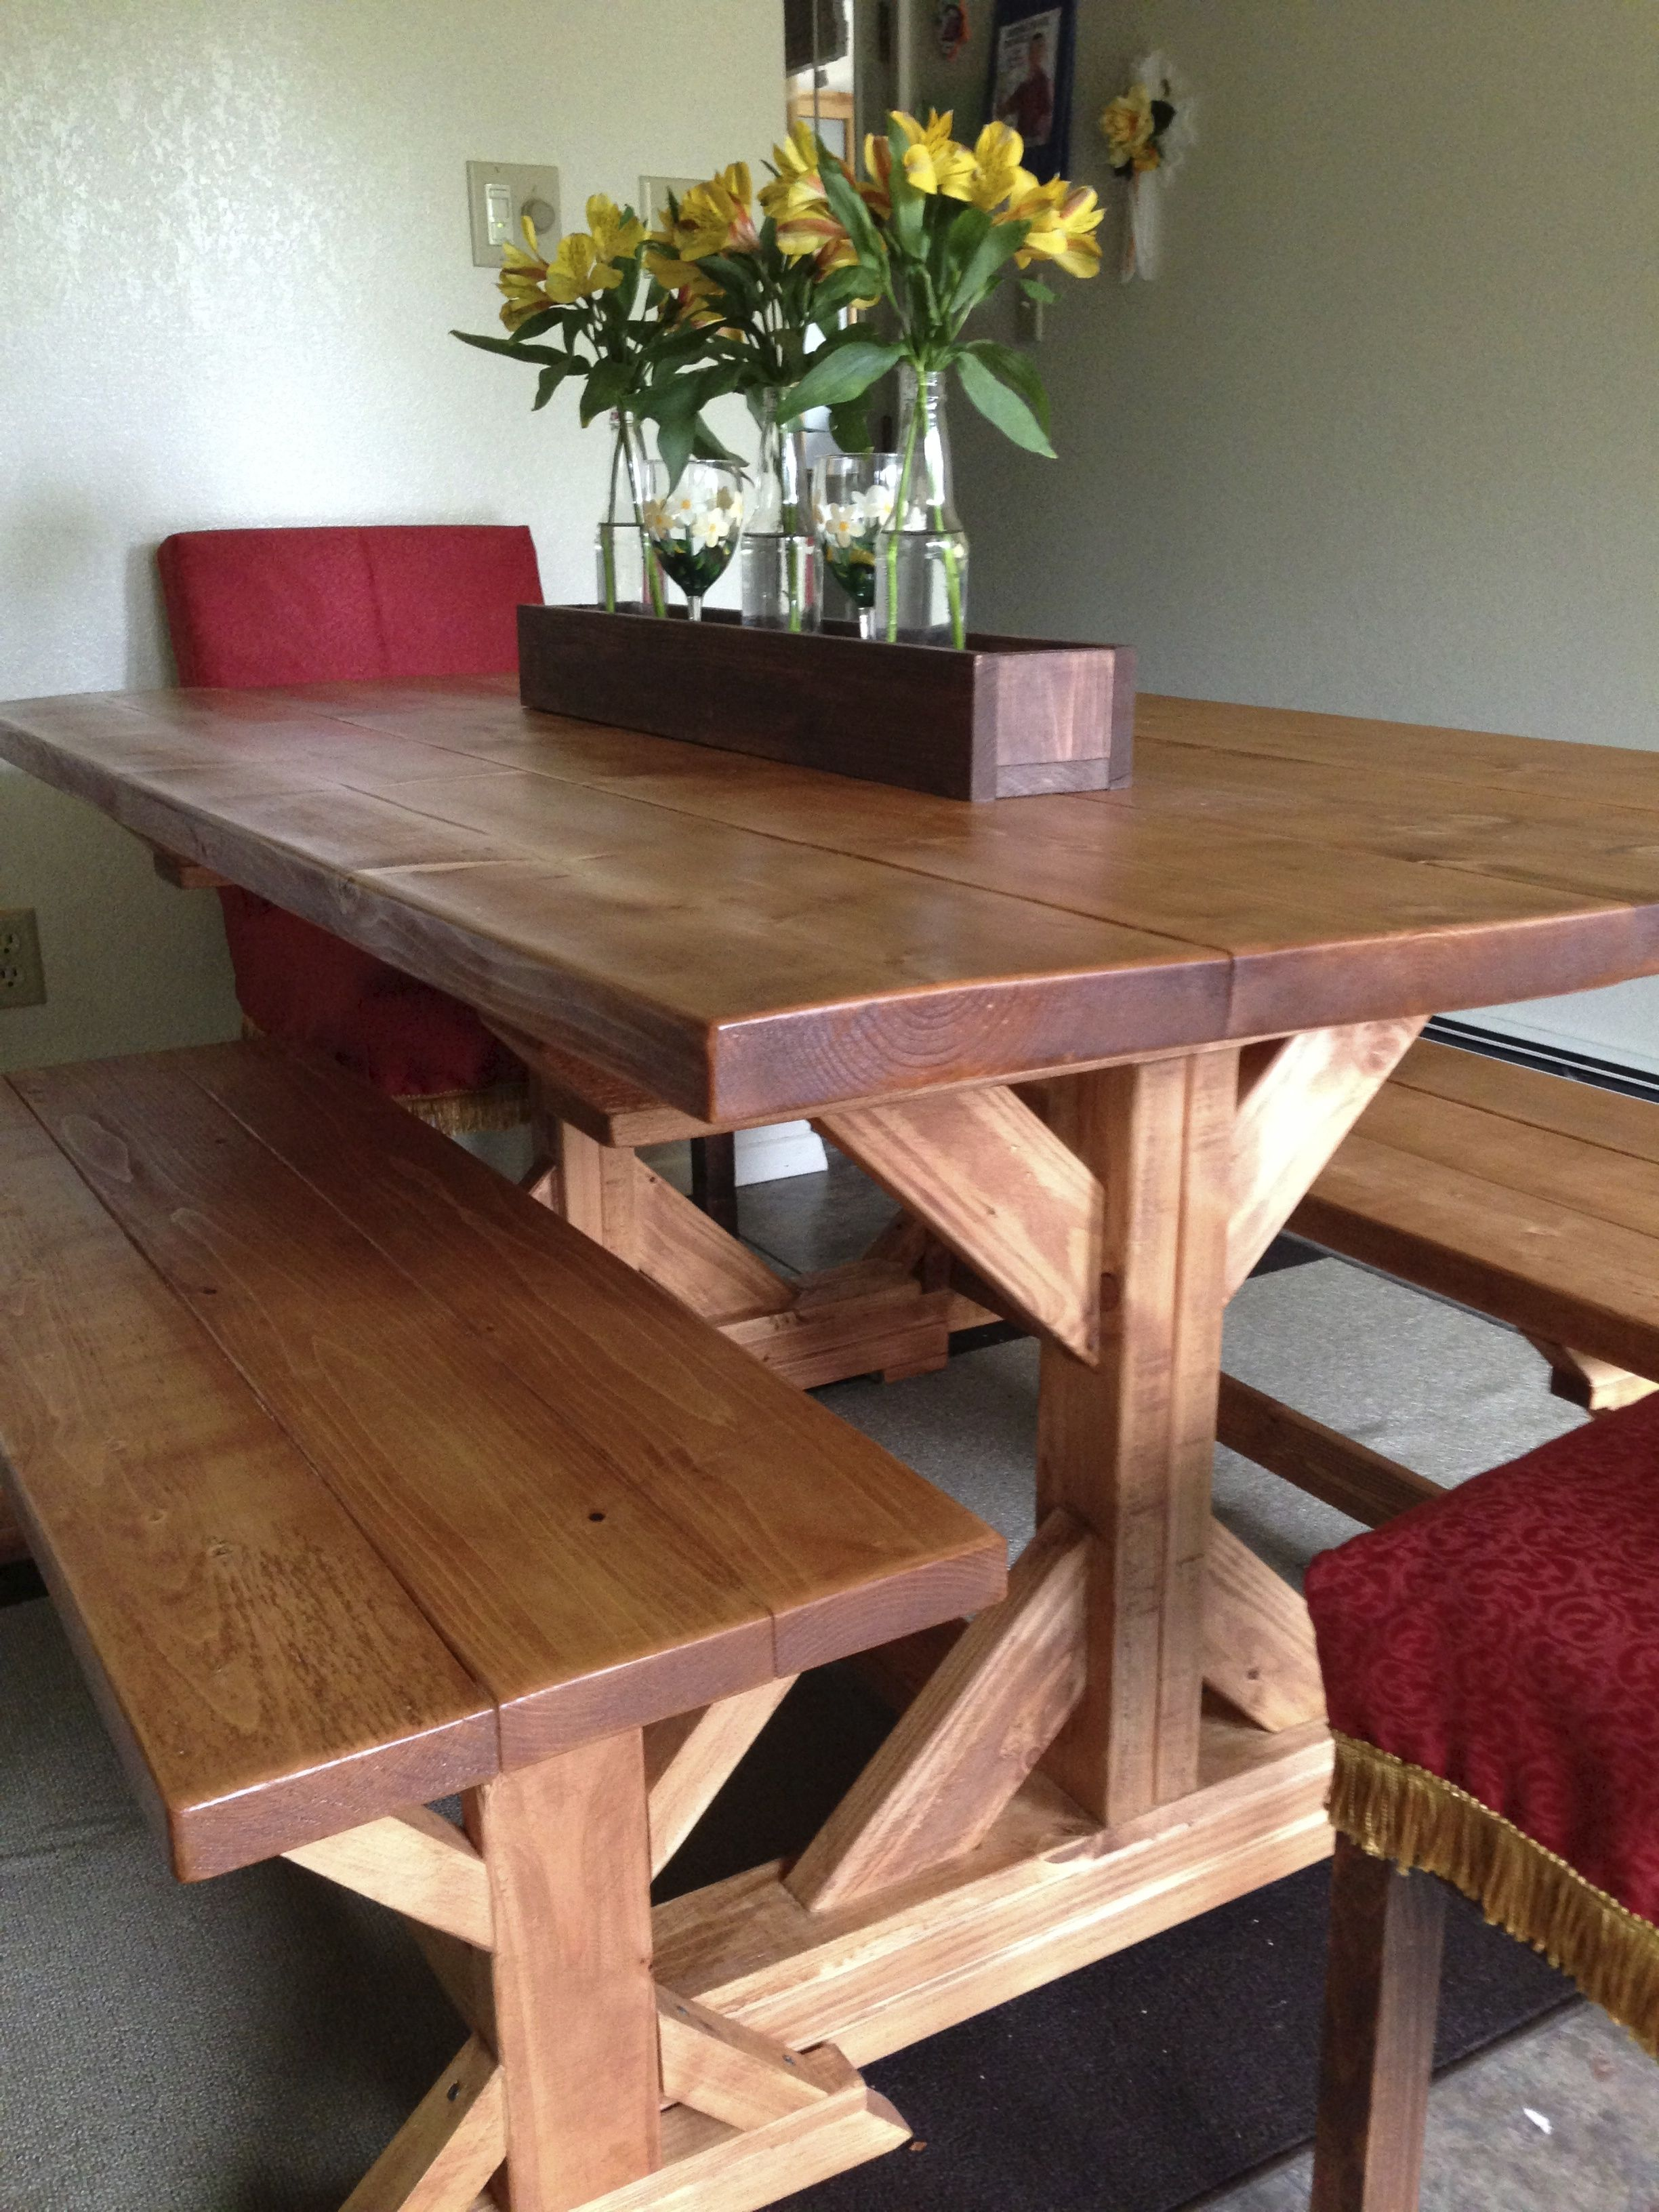 Diy Dining Room Chairs Plans Academy Folding Fancy X Farmhouse Table And Benches At Ana White